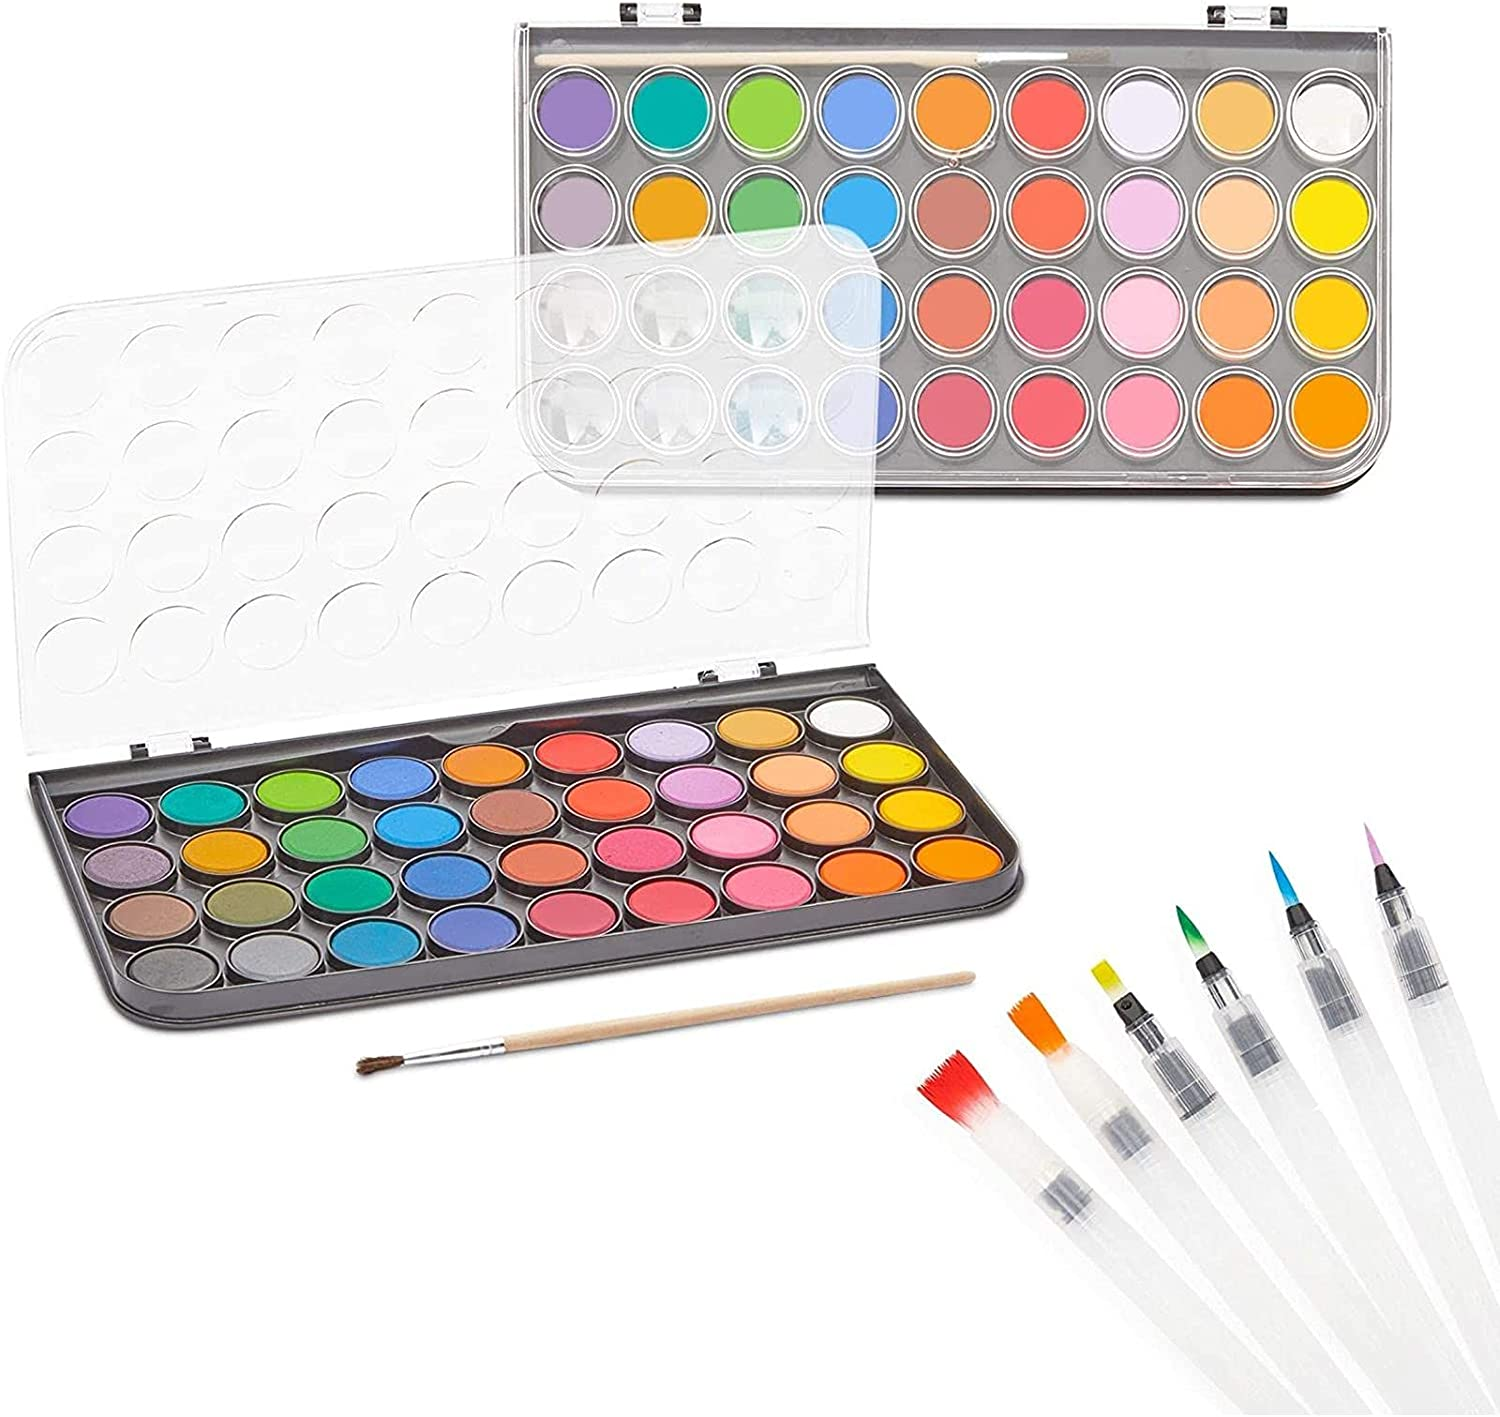 Watercolor Painting Popularity Limited time sale Set with Brushes Pens 36 and Paint Colors